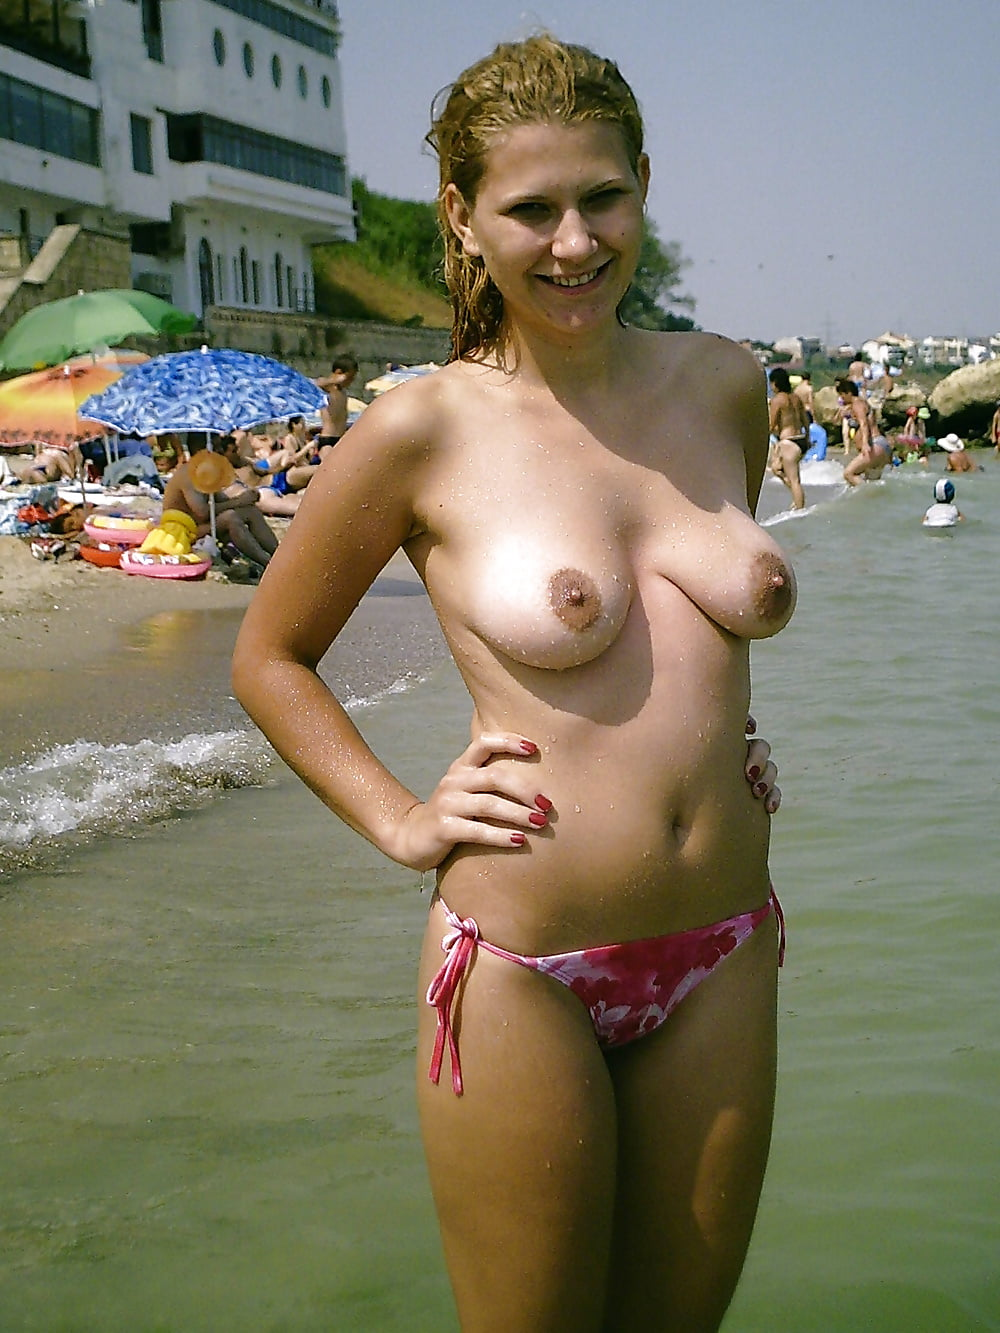 Amateur Girlfriends Walking Topless All Over The Beach